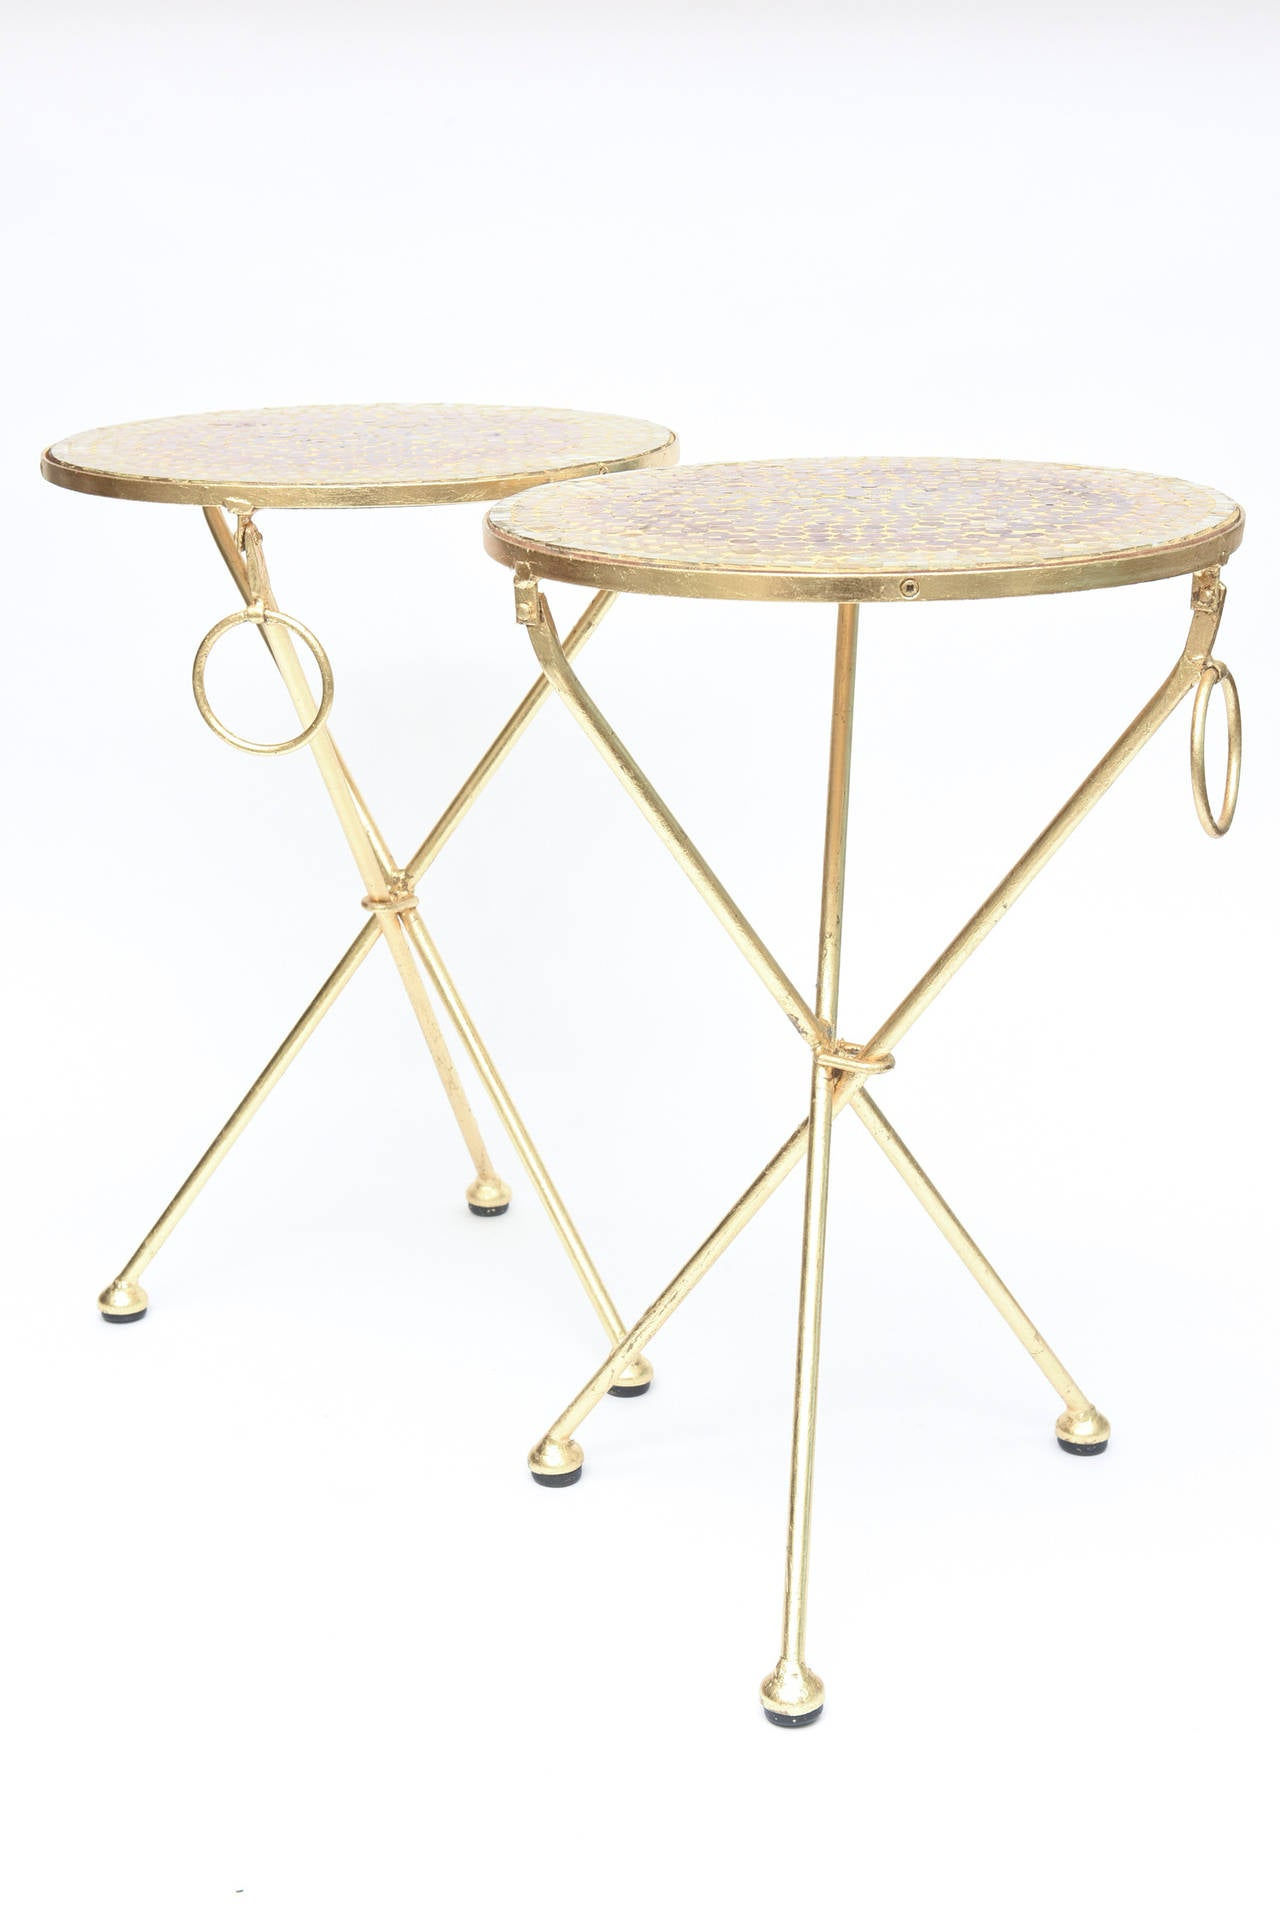 Pair of Italian Vintage Gold Leaf and Mosaic Glass Tripod Side Tables For Sale 1